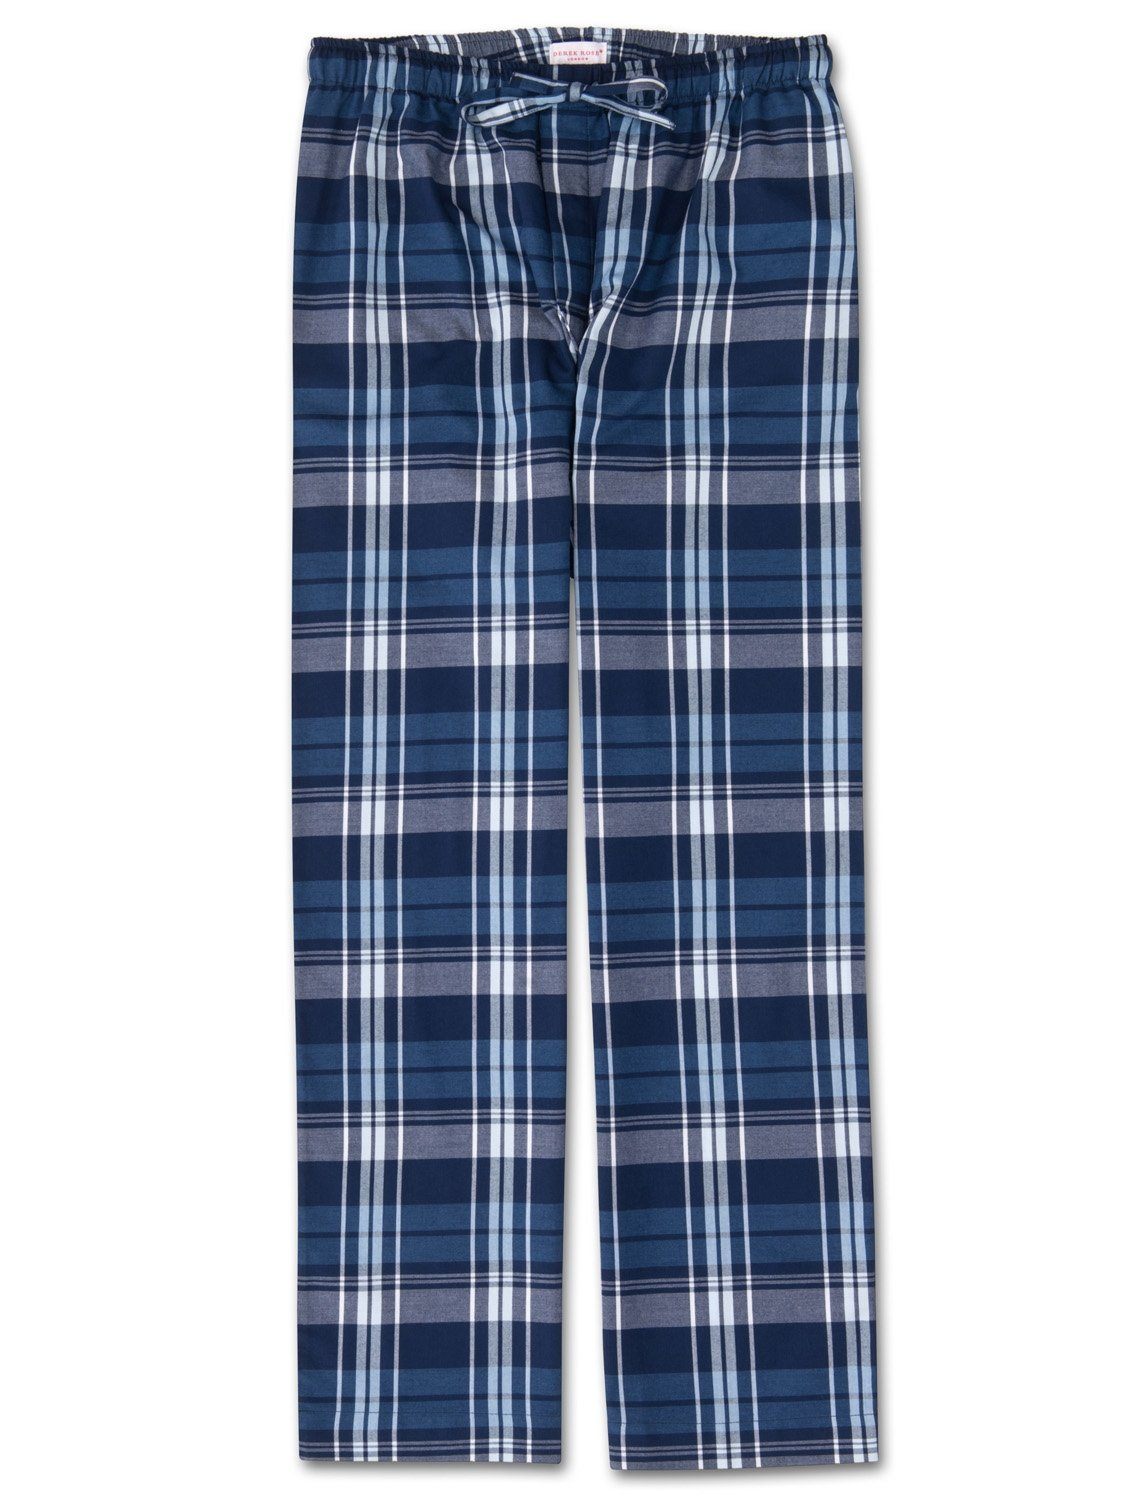 Men's Lounge Trousers Ranga 31 Brushed Cotton Check Navy